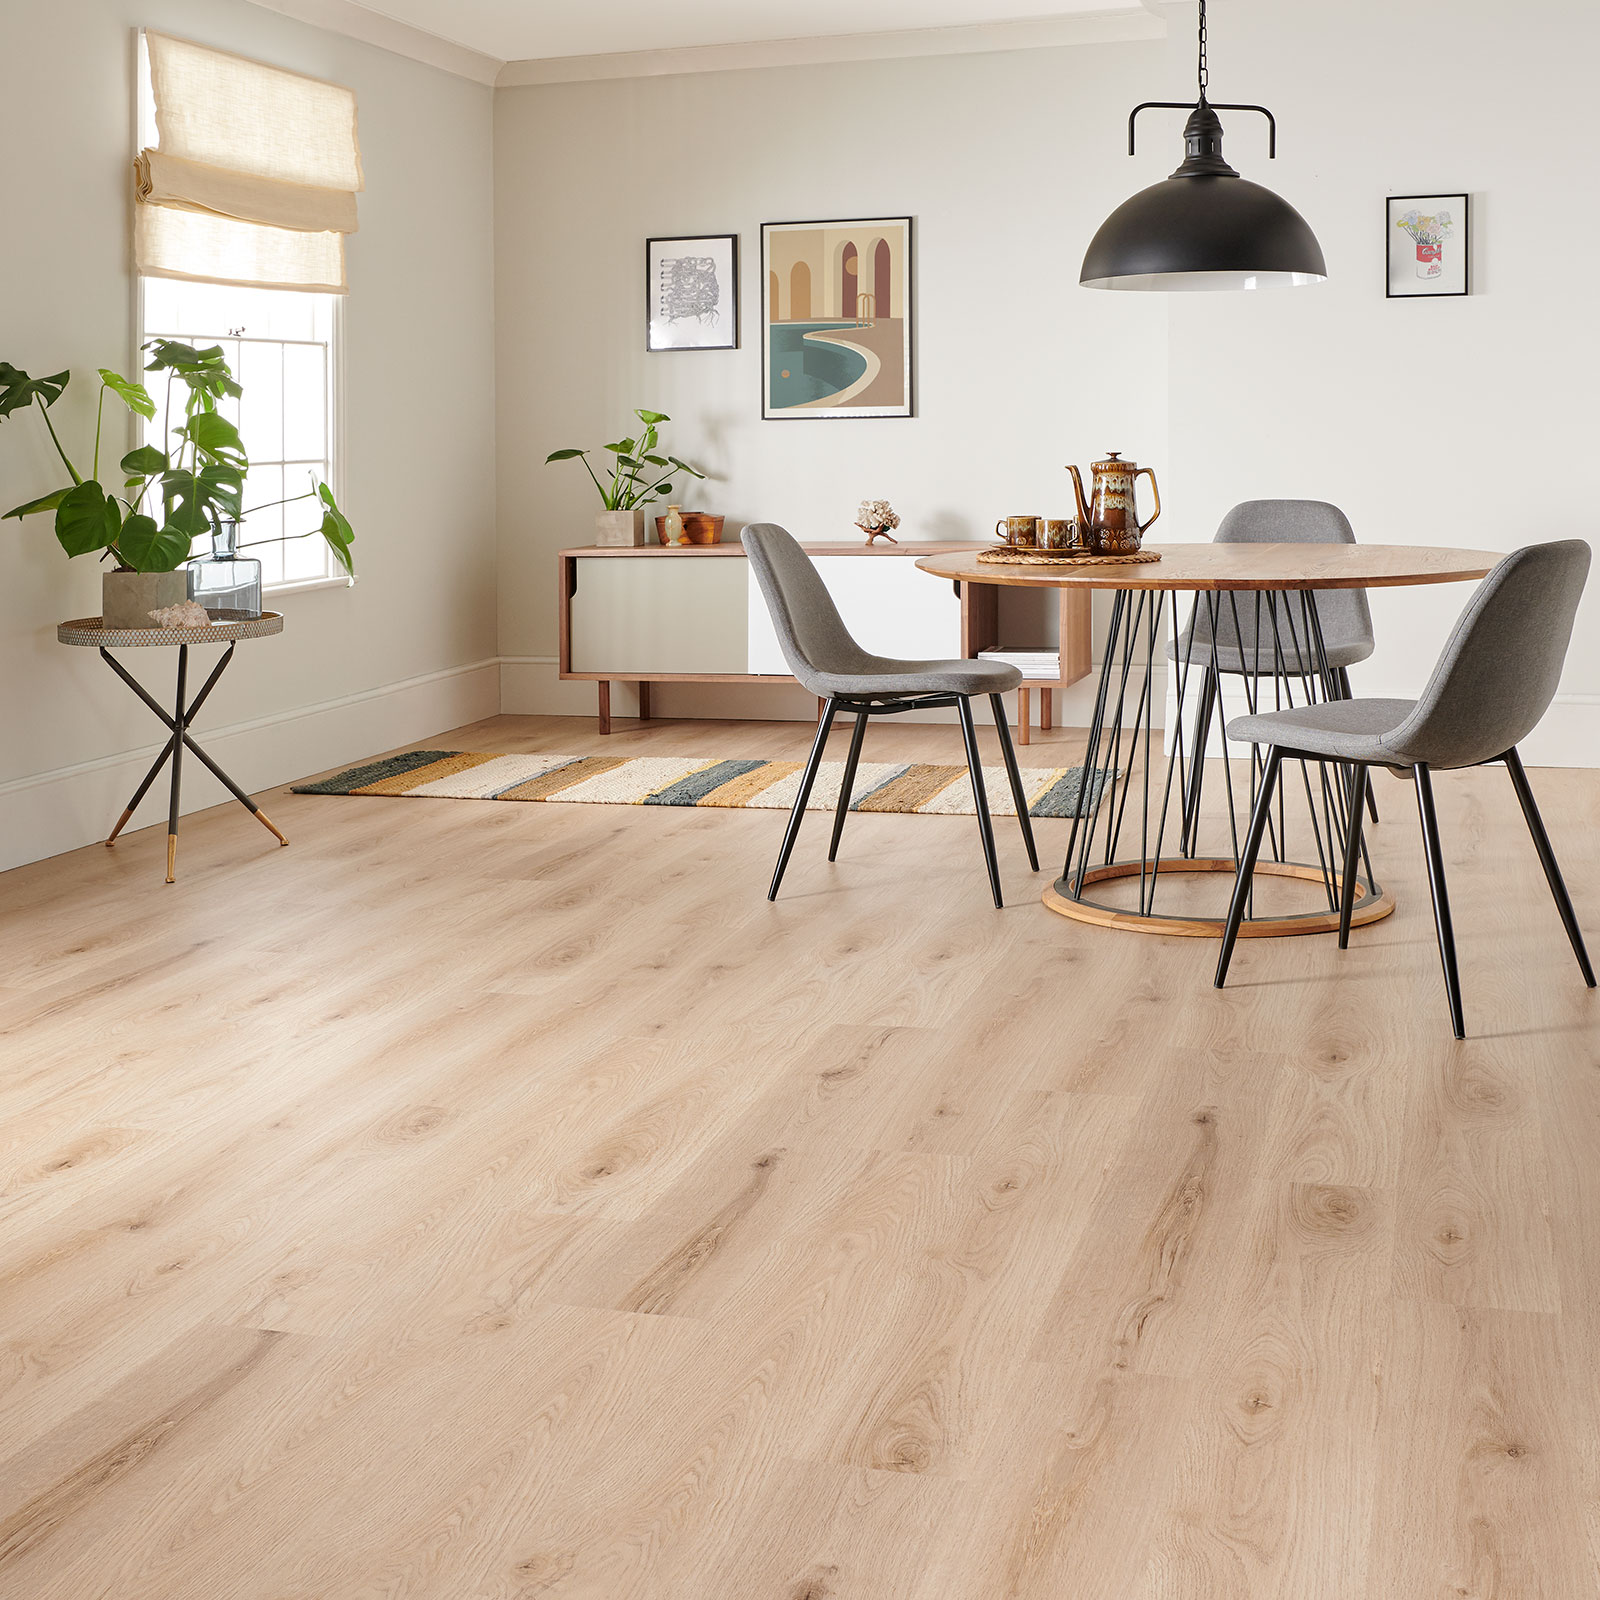 2020 Flooring Trends.Find The New Flooring Trends You Can Expect To See For 2020